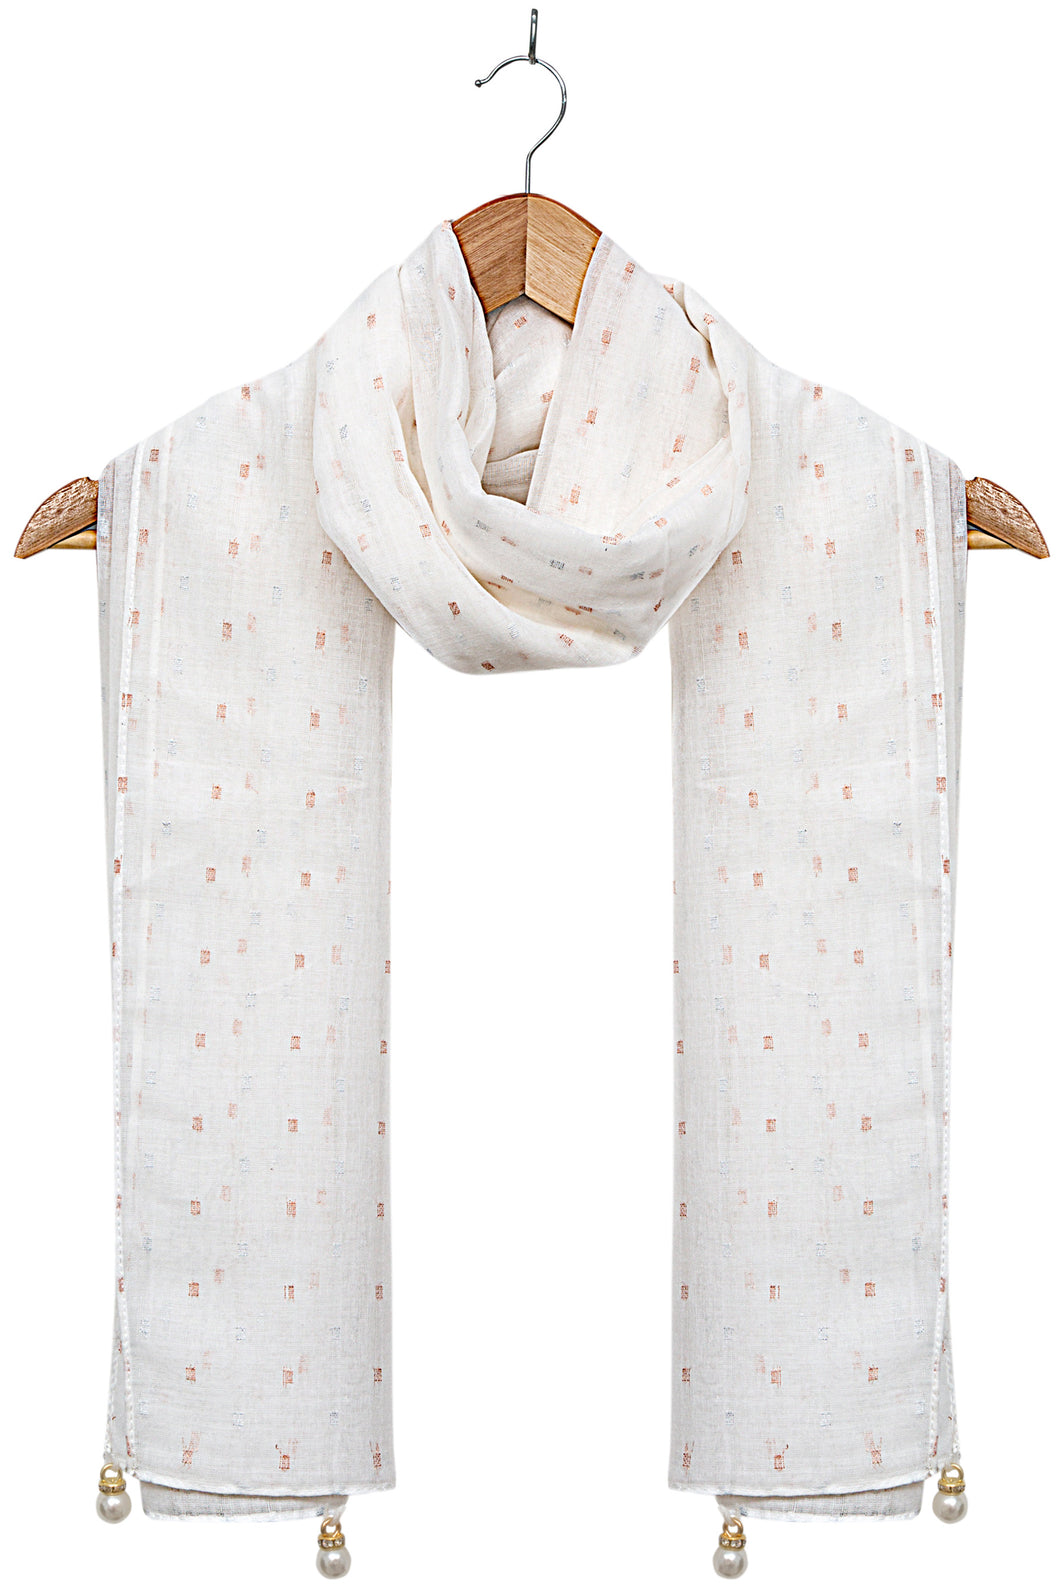 Woven-Solid-with-Pearls-Offwhite & Gold